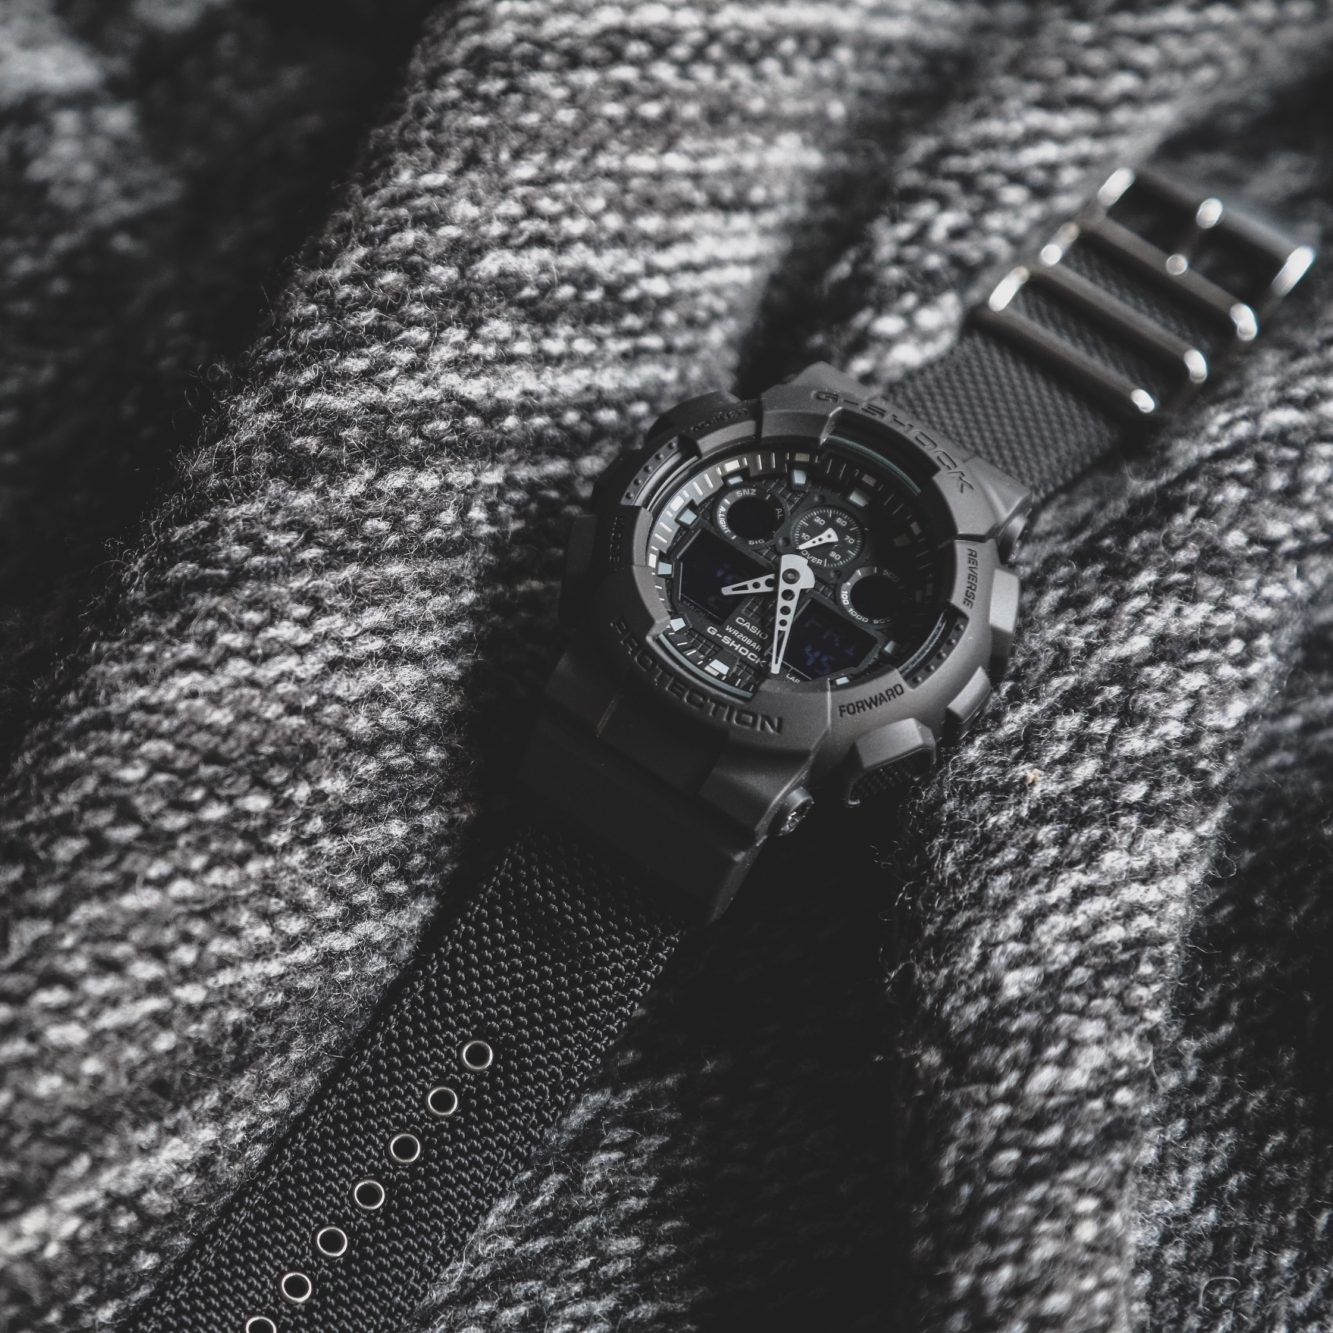 9be3d2a6e337 The G-Shock Military Black Cloth collection will be available from February  23rd